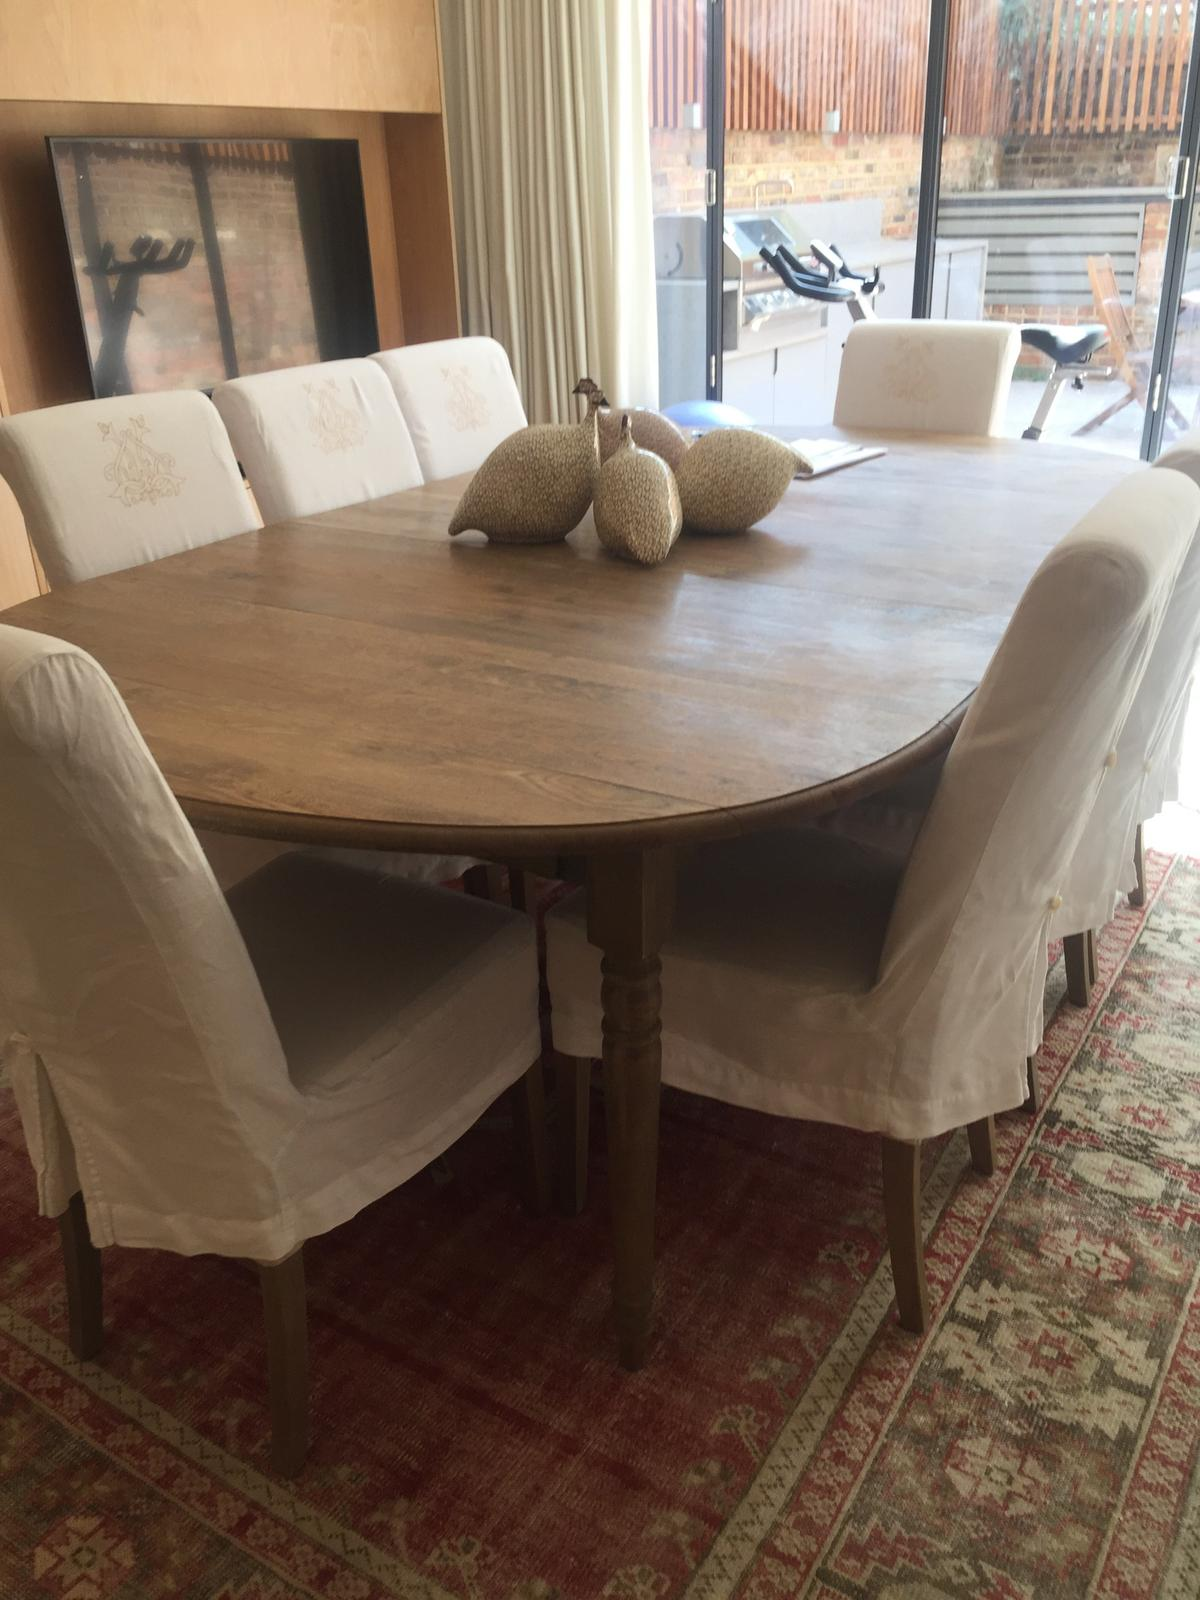 Excellent Oka Extending Dining Table With 8 Chairs In Sw1W Westminster Inzonedesignstudio Interior Chair Design Inzonedesignstudiocom